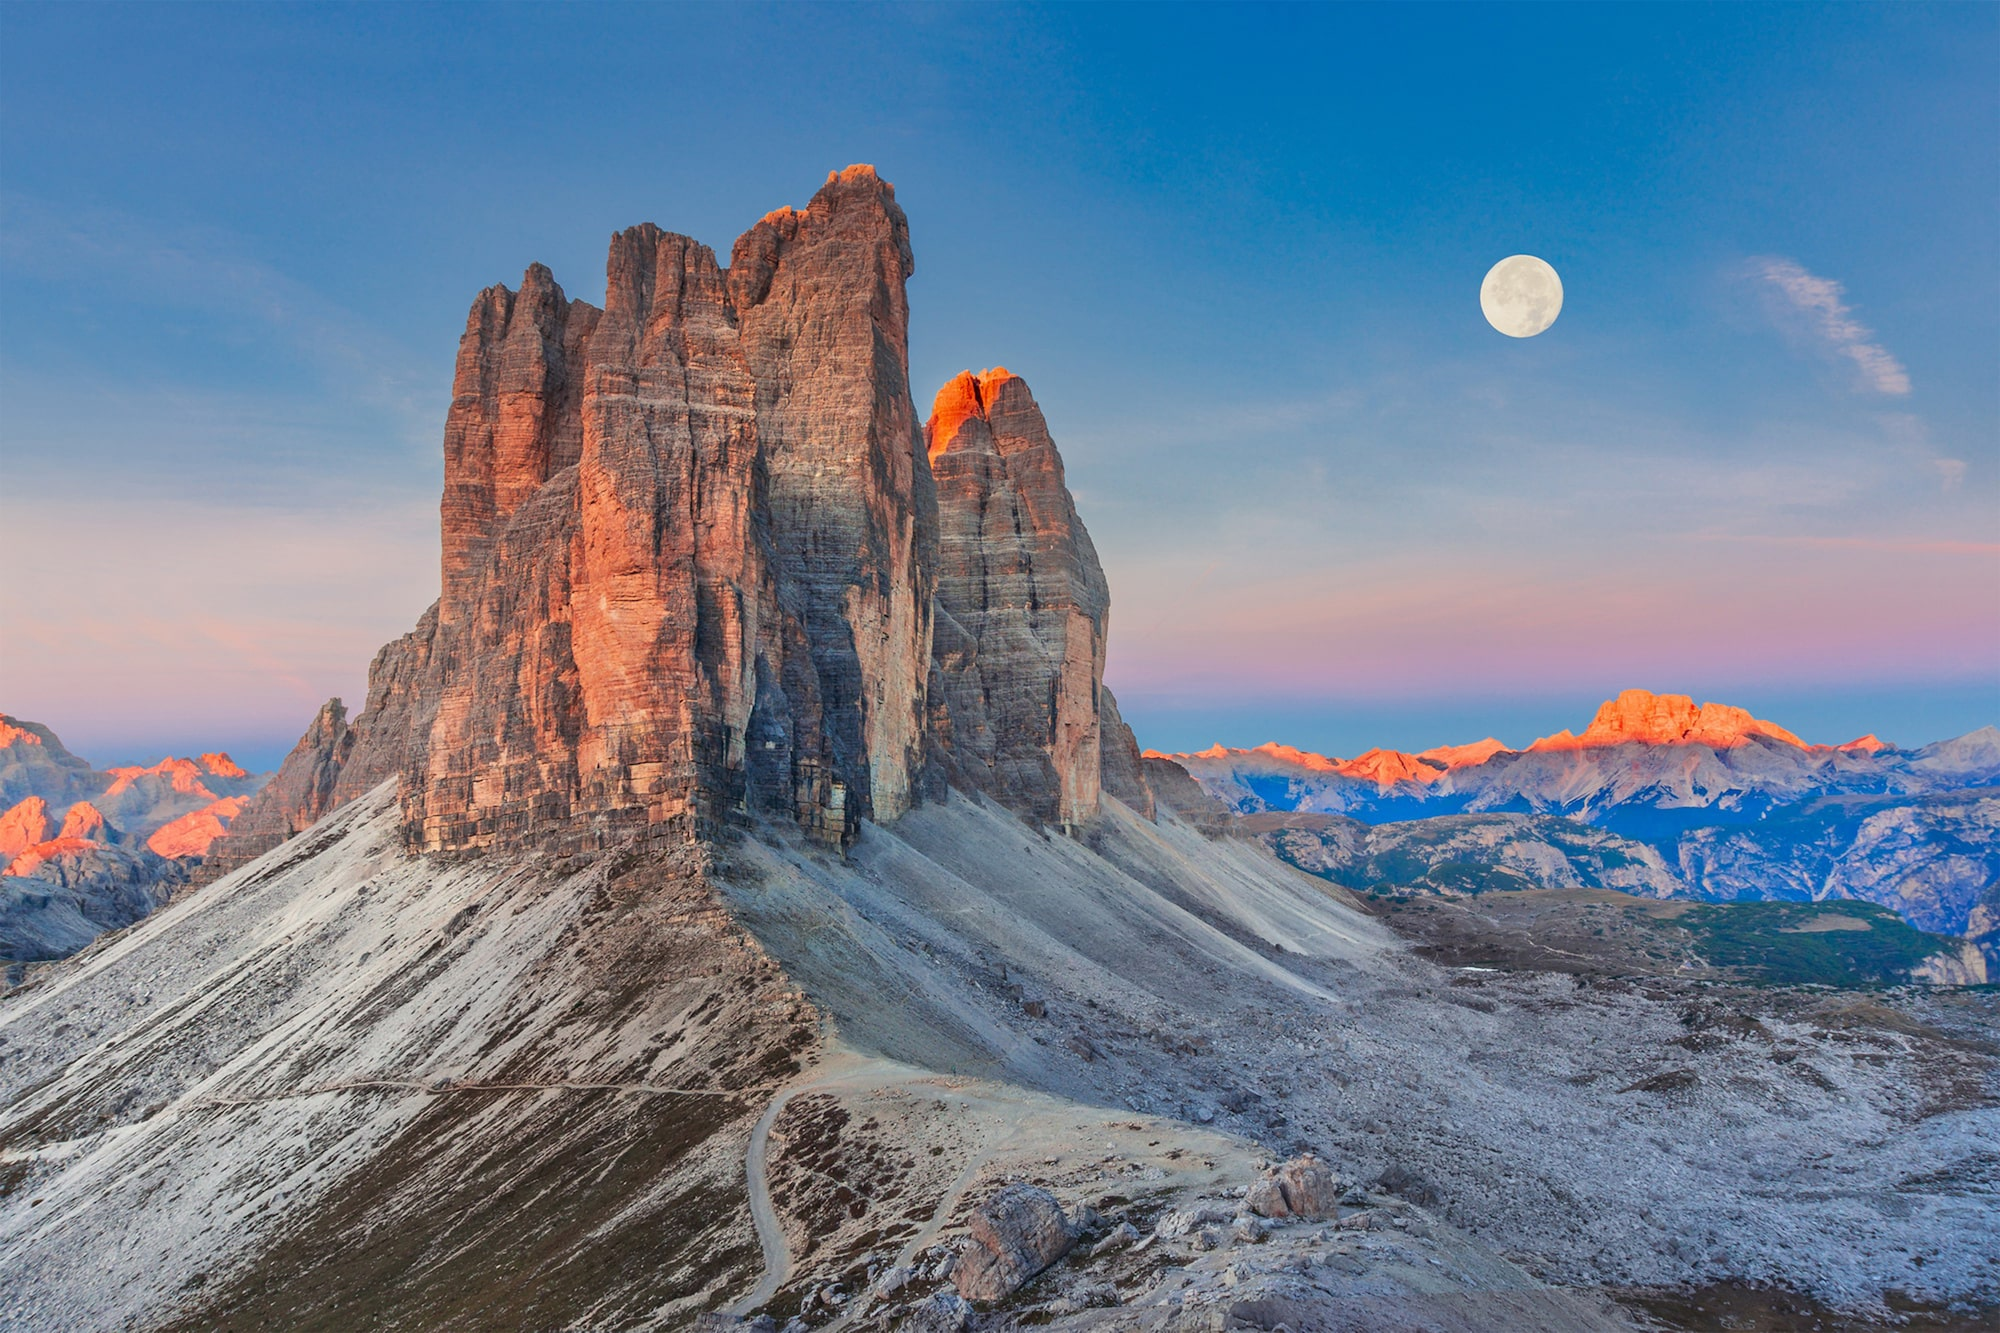 dmytro korol sony nex 6 a striking mountain peak at dusk illuminated with a warm glow with a full moon visible behind